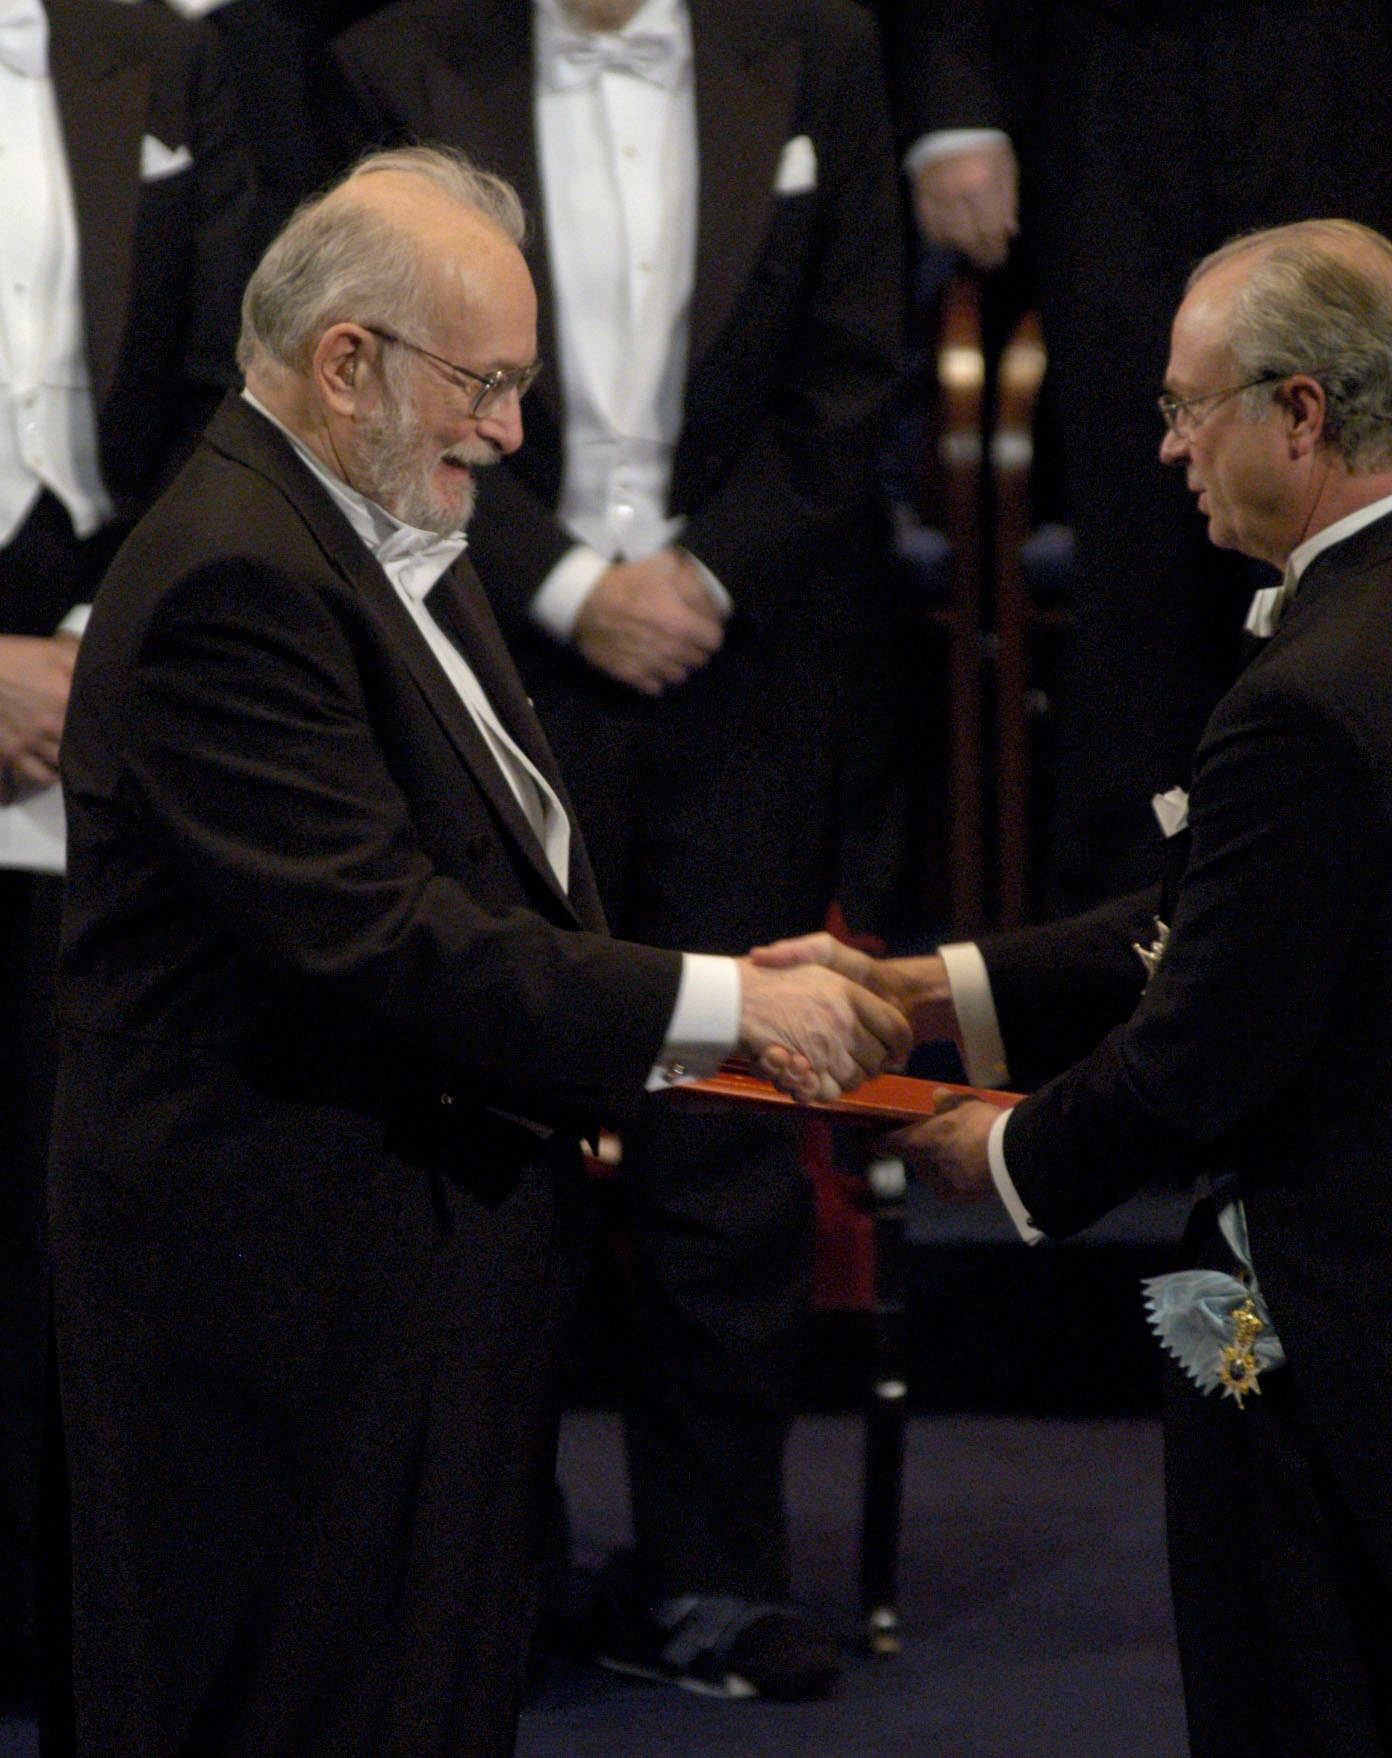 Paul Lauterbur accepts the 2003 Nobel Laureate in Physiology or Medicine. Photo by Darrell Hoemann.